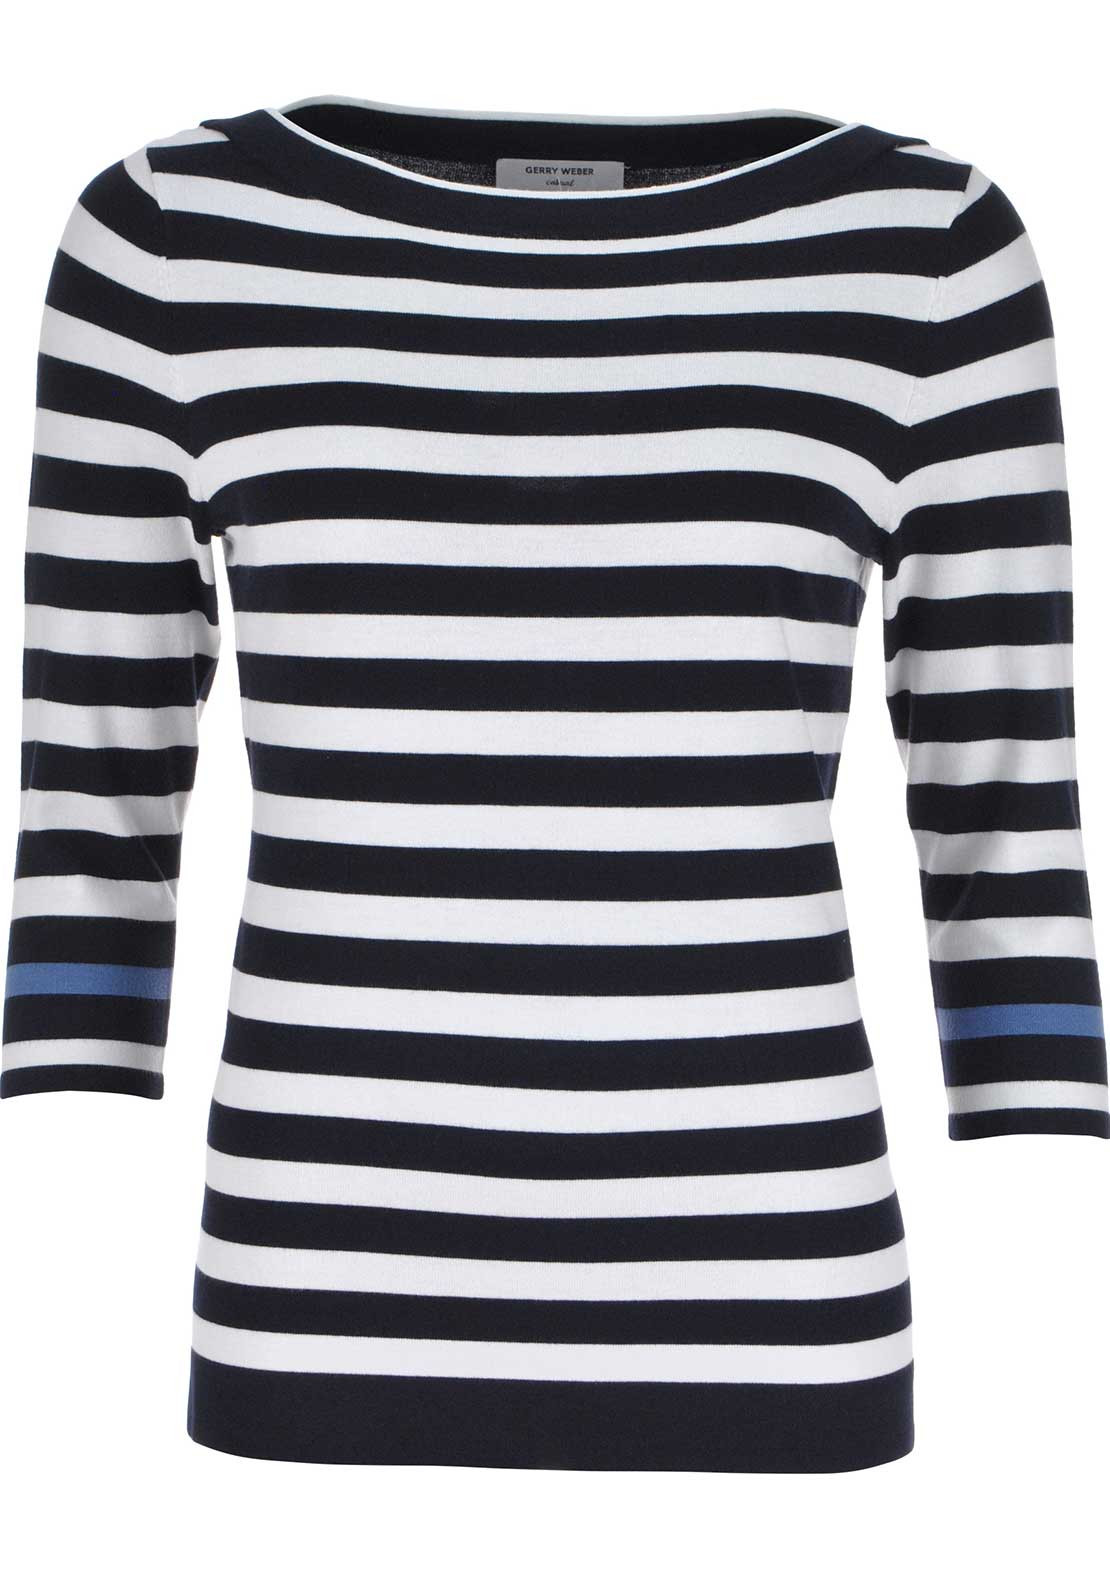 Gerry Weber Striped Print Fine Knit Sweater Jumper, Navy and White